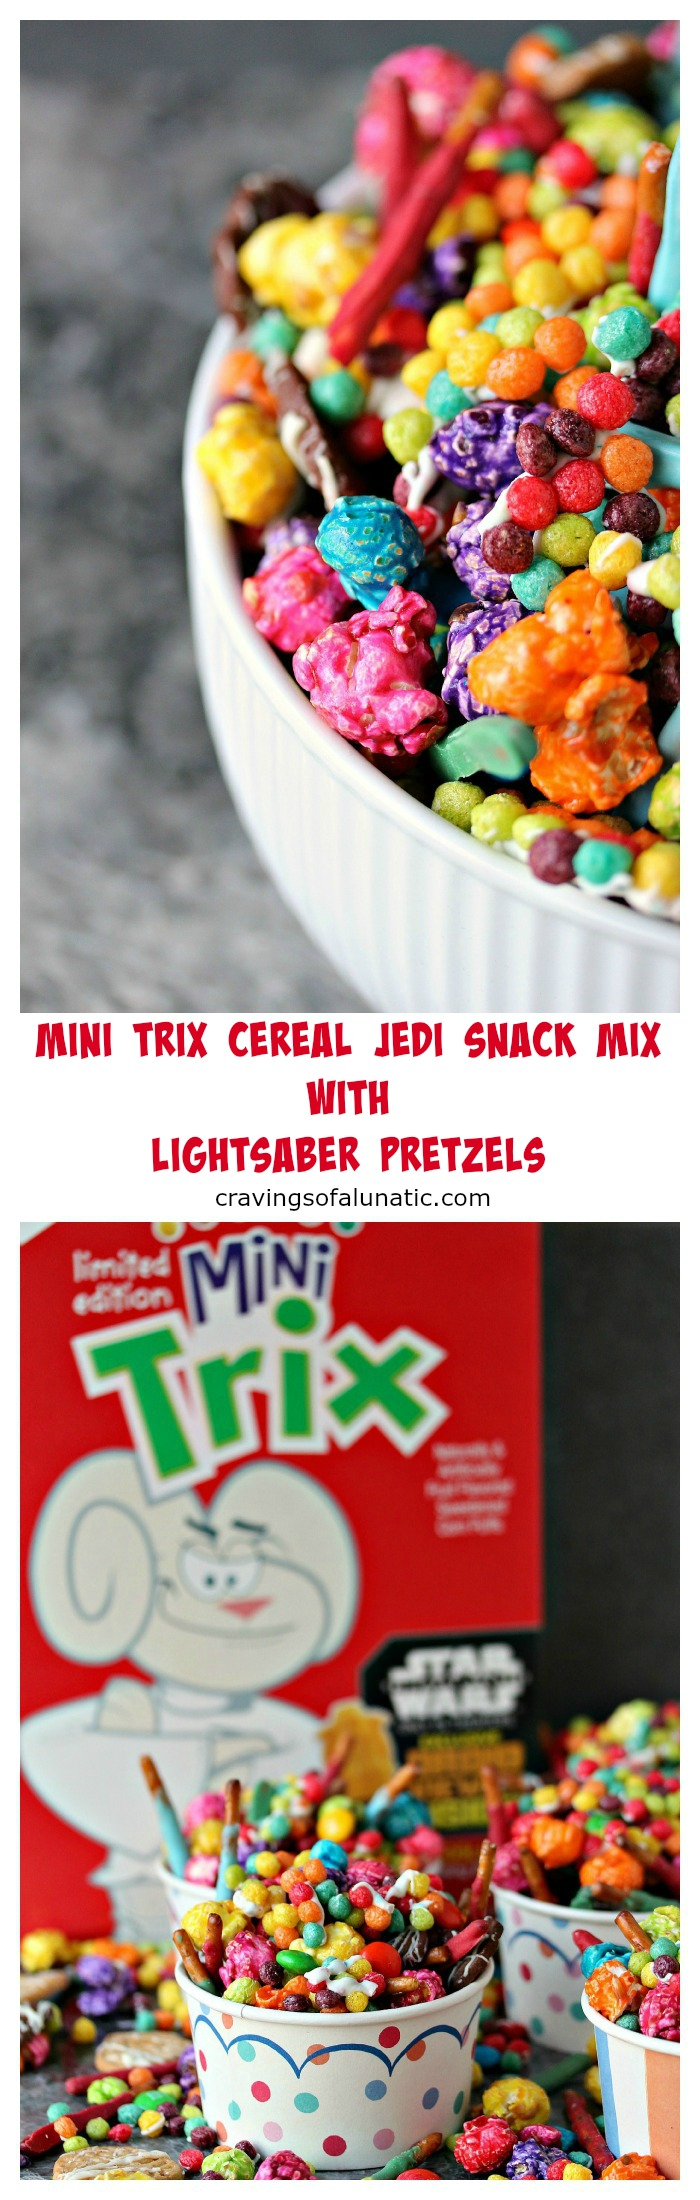 Mini Trix Cereal Jedi Snack Mix with Lightsaber Pretzels by cravingsofalunatic.com- This Jedi Snack Mix uses Mini Trix Cereal, Pretzels made into Lightsabers, coloured popcorn, tiny wafer cookies and M&M Candies. It's the perfect snack for the premiere of Star Wars: The Force Awakens! May the force be with you! (@CravingsLunatic)